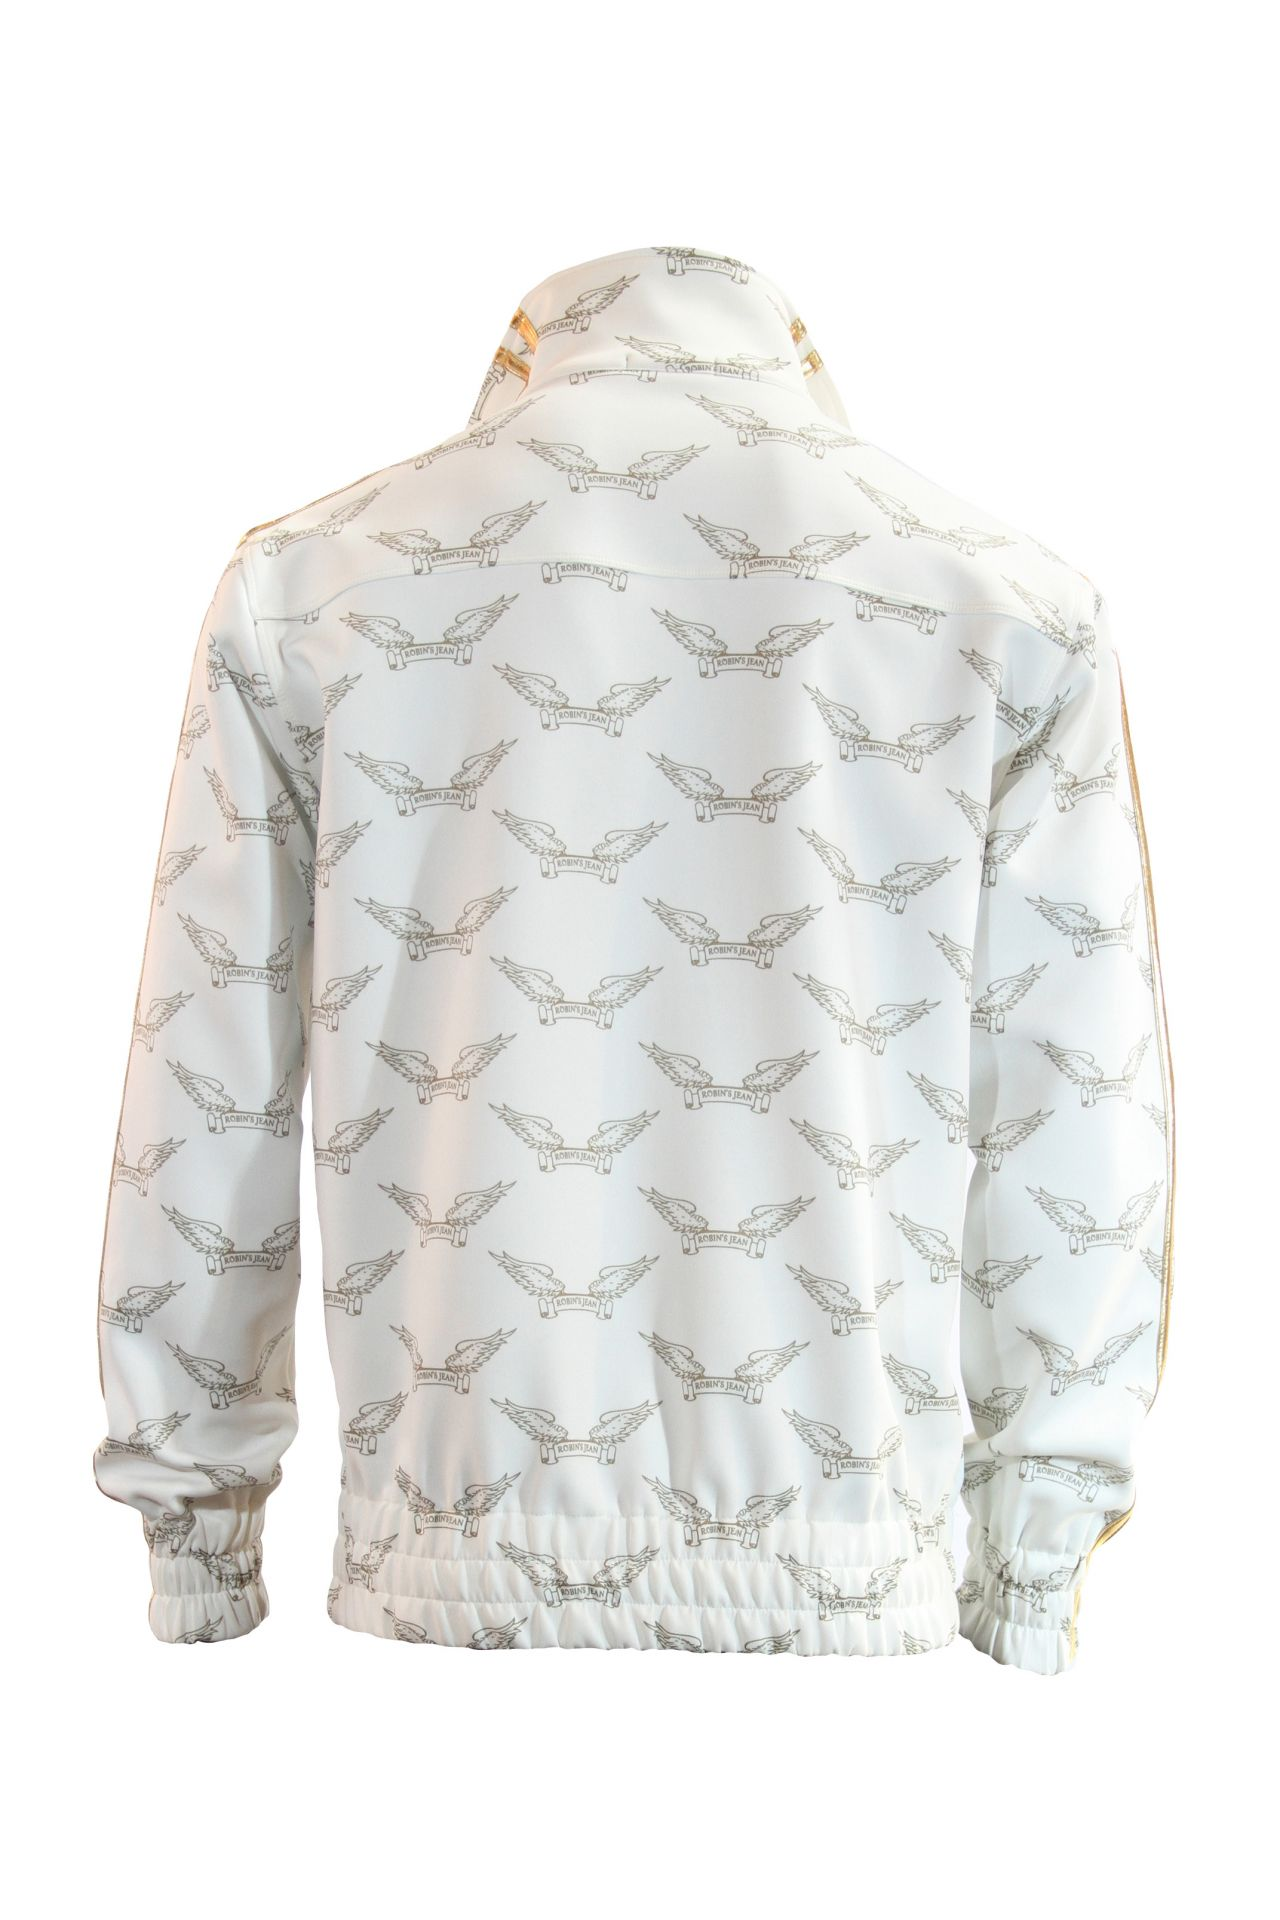 ROBIN'S  MONOGRAM TRACK JACKET IN WHITE AND GOLD